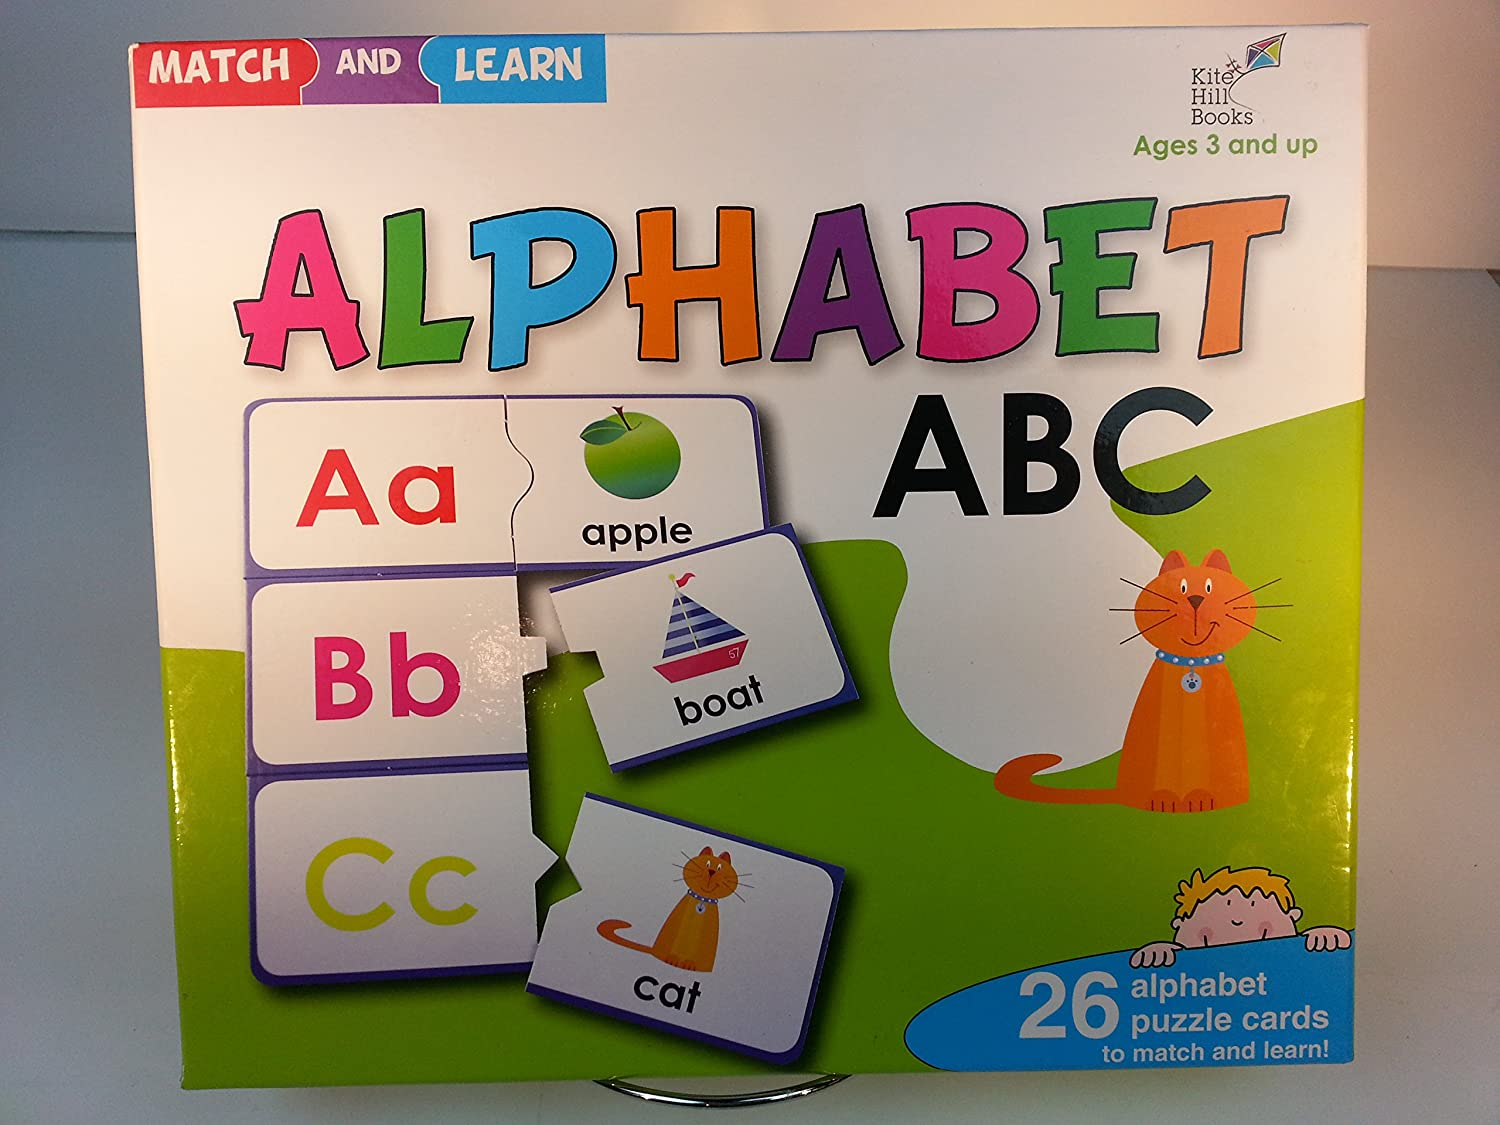 Match and Learn Alphabet 26 Alphabet Puzzle Cards Kite Hill Books